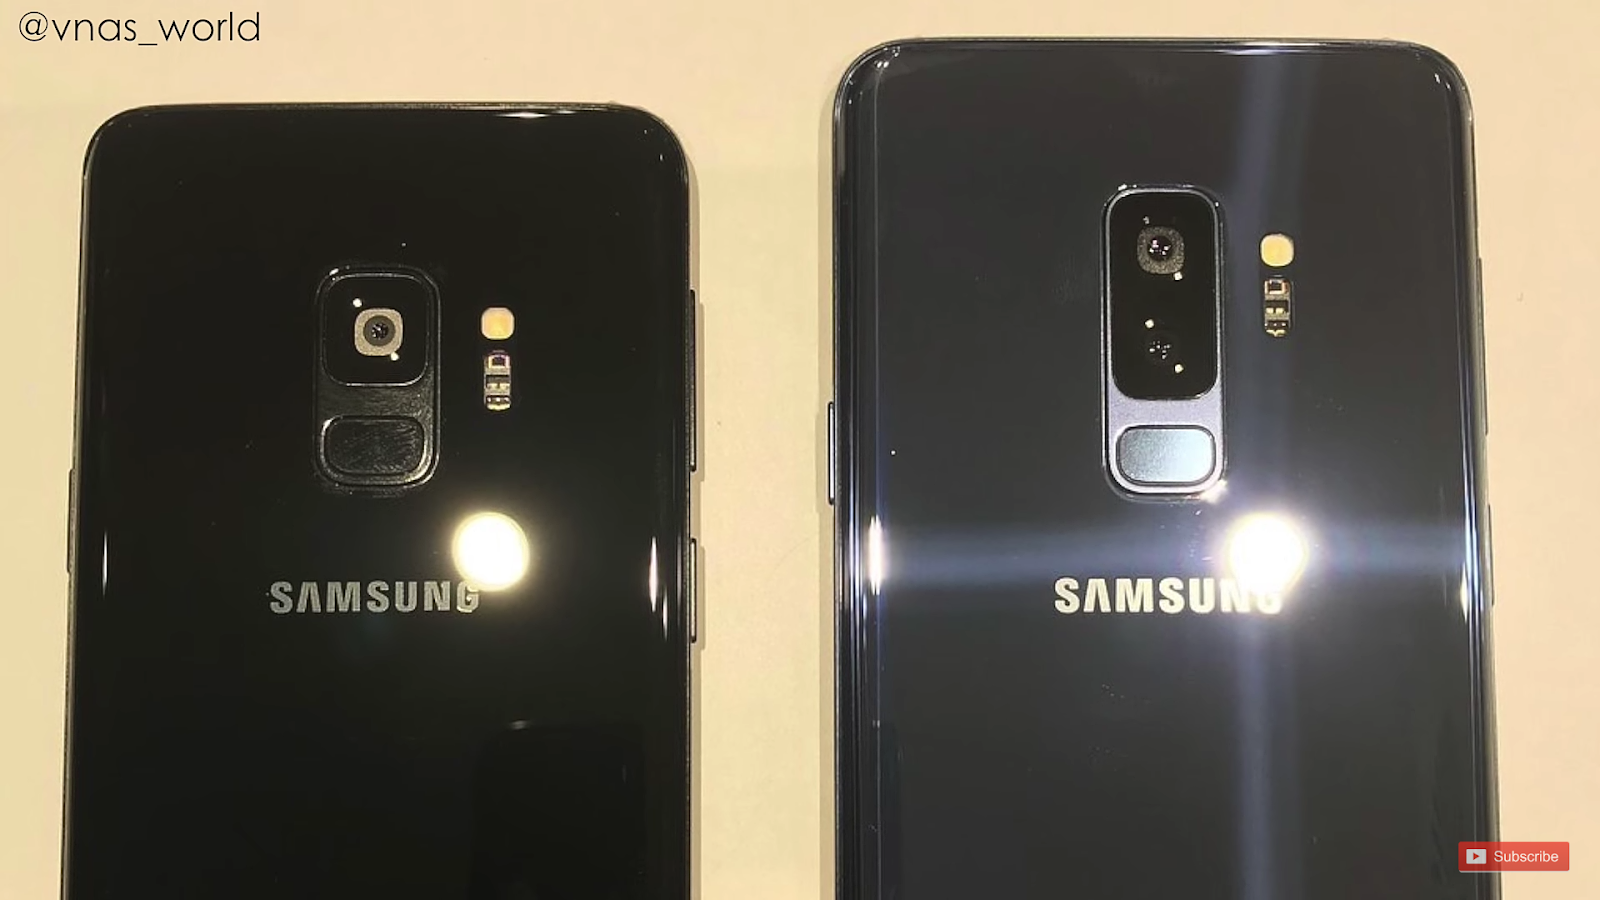 Samsung galaxy s9 and s9 plus back view